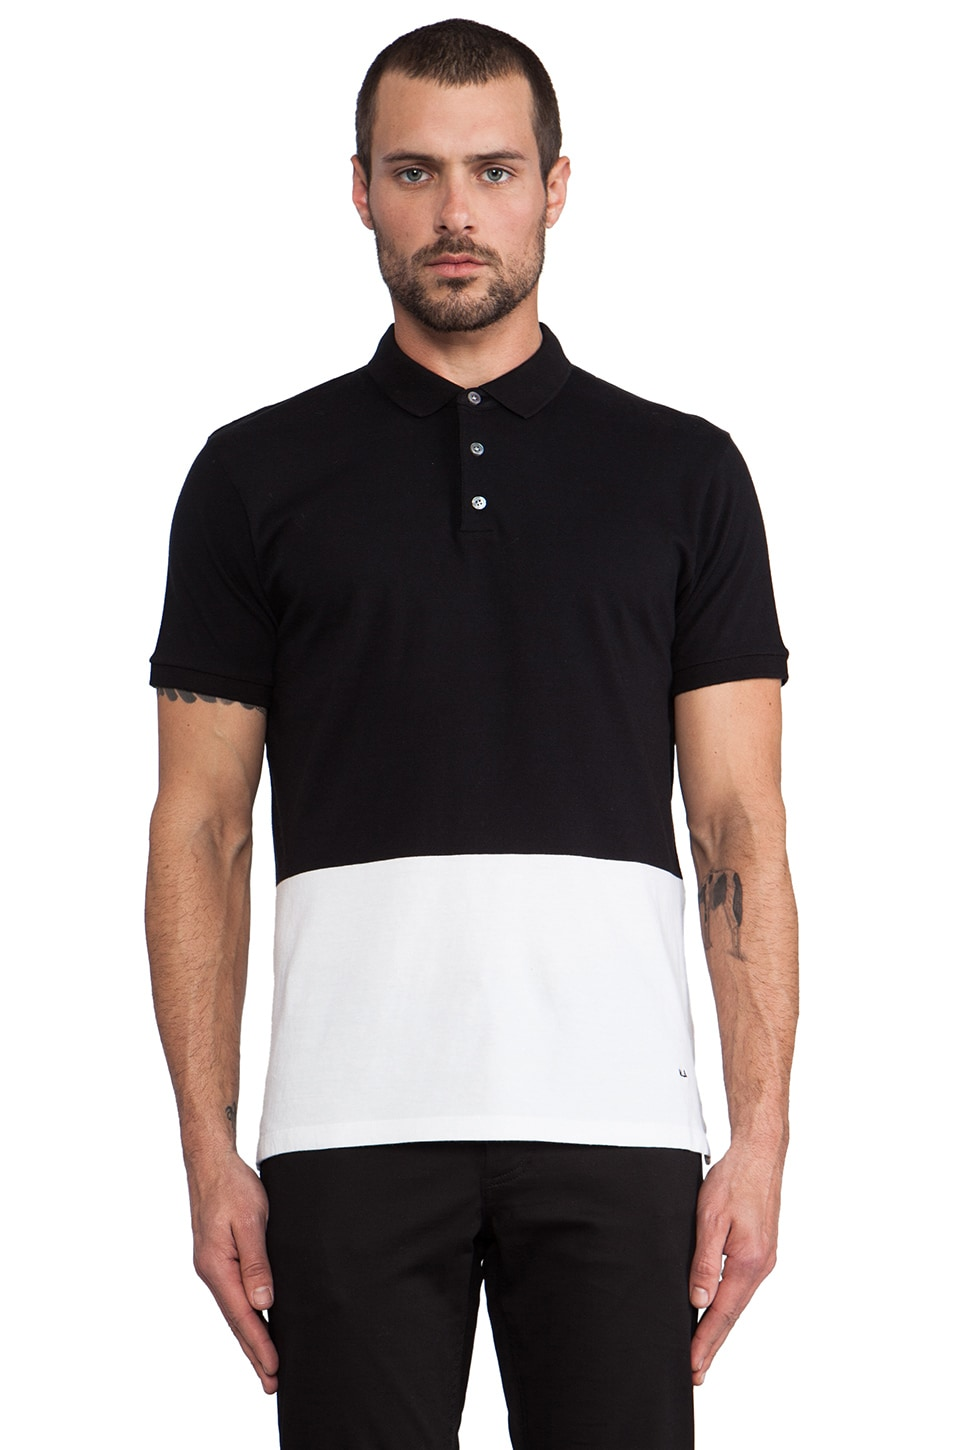 Marc by Marc Jacobs 2 Tone Polo in Black Multi